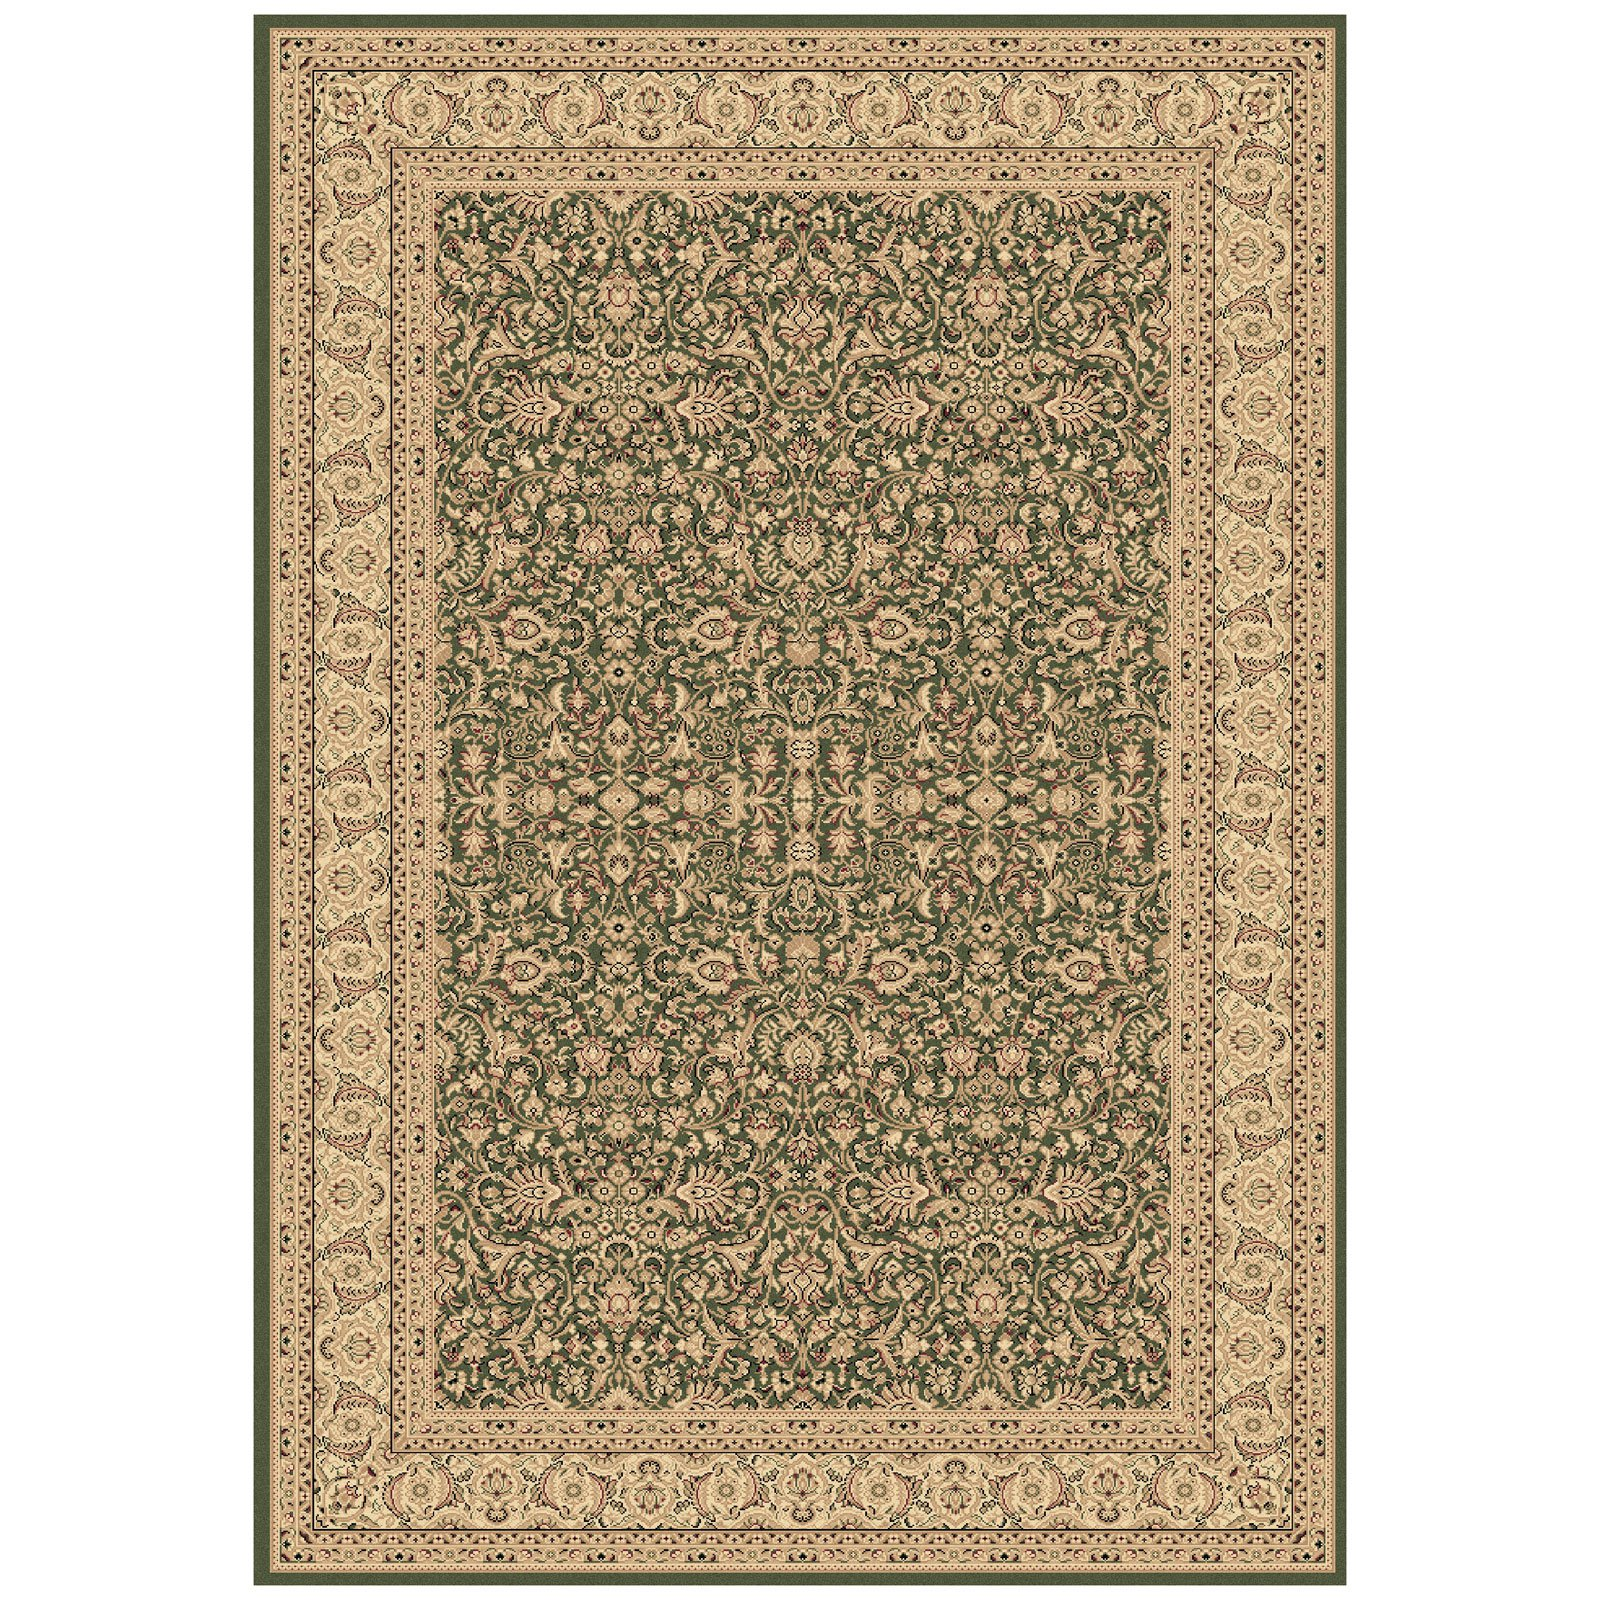 Dynamic Rugs Legacy 58004 All-Over Persian Rug - Green